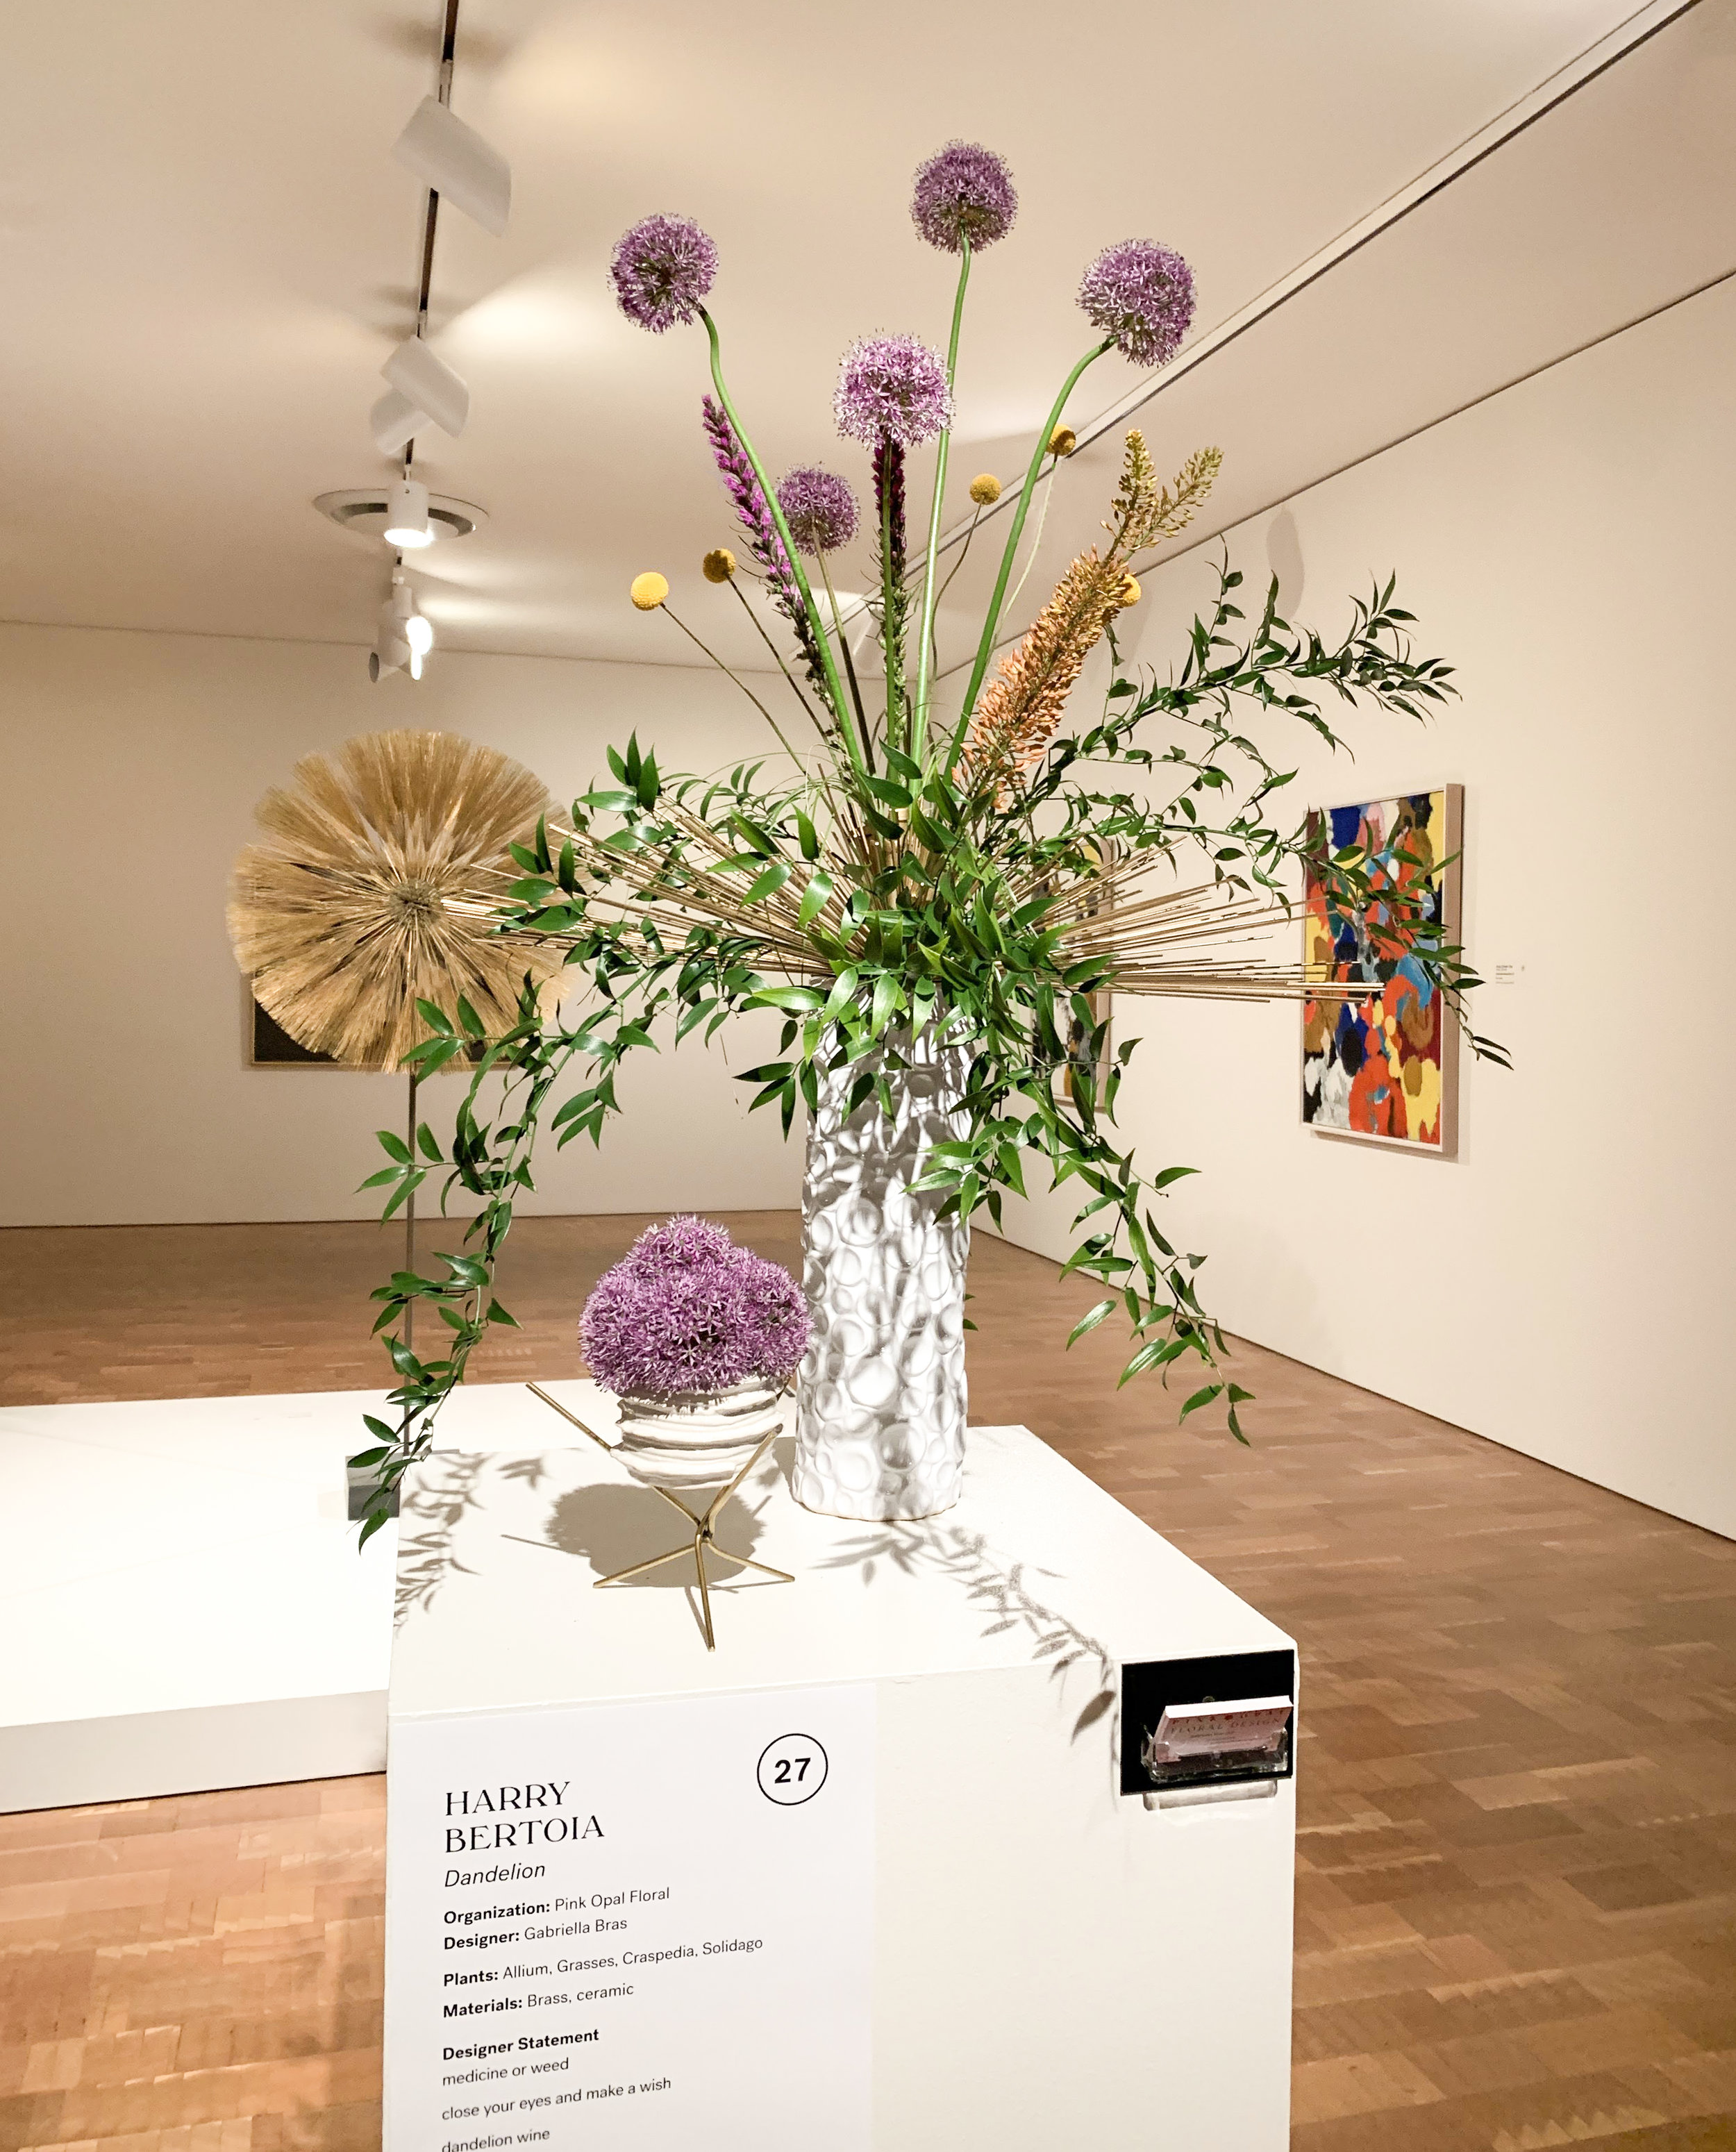 I also quite liked this one, especially the little bowl of allium in the shape of the dandelion sculpture. Three years ago,  this interpretation  of the same sculpture was my best in show.